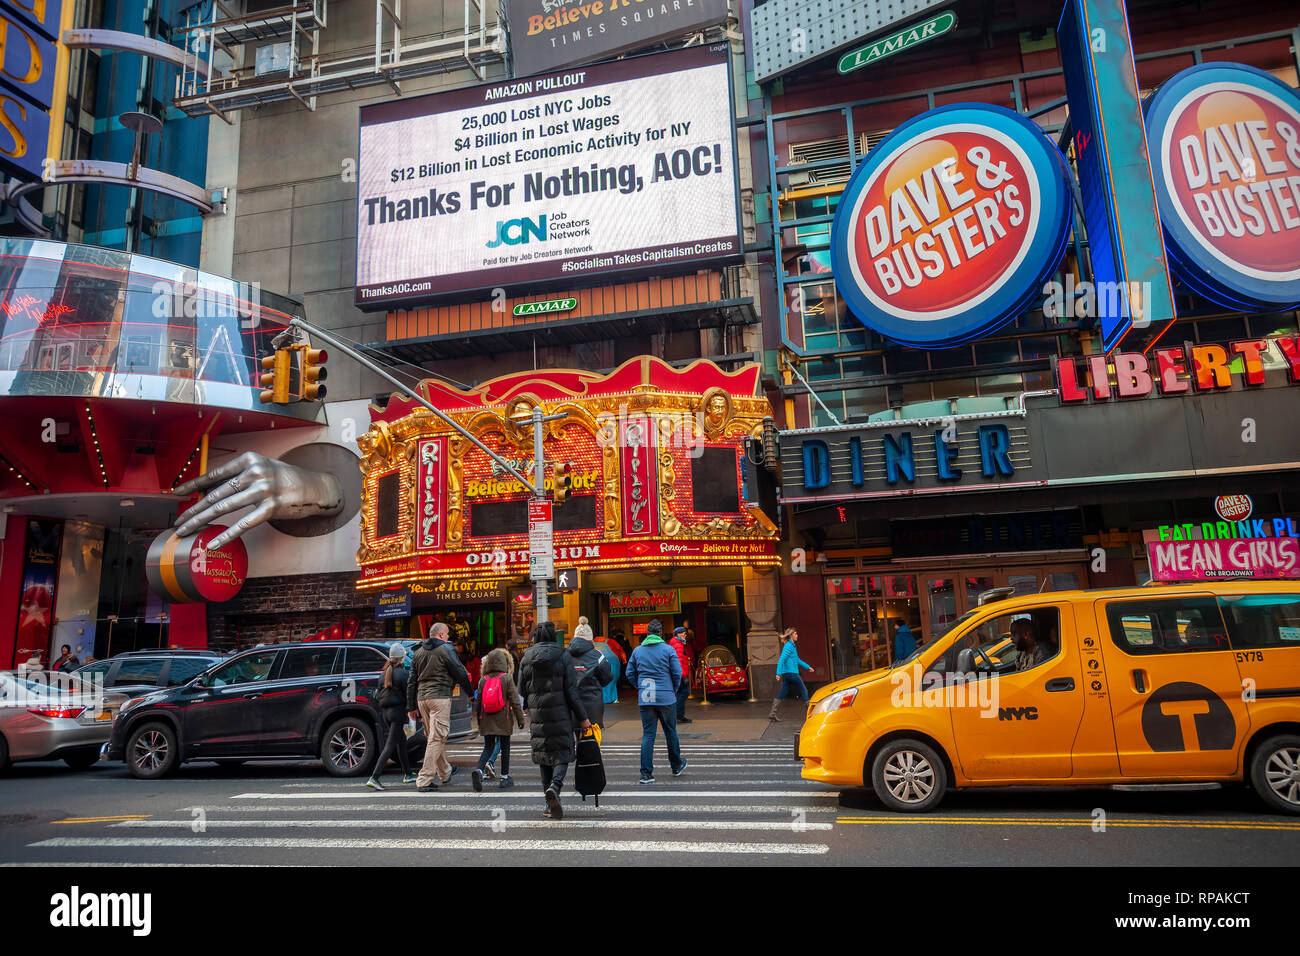 New York, USA. 21st Feb 2019. An electronic billboard in Times Square in New York on Thursday, February 21, 2019 chastises Alexandria Ocasio-Cortez (AOC) (D-NY) for squashing the deal between New York City and Amazon to build HQ2 in Long Island City. The Job Creators Network advocates for less government involvement in businesses and the lowering of taxes with a Conservative agenda. Ocasio-Cortez was one of numerous politicians opposed to the deal which was not in her district.(© Richard B. Levine) Credit: Richard Levine/Alamy Live News - Stock Image